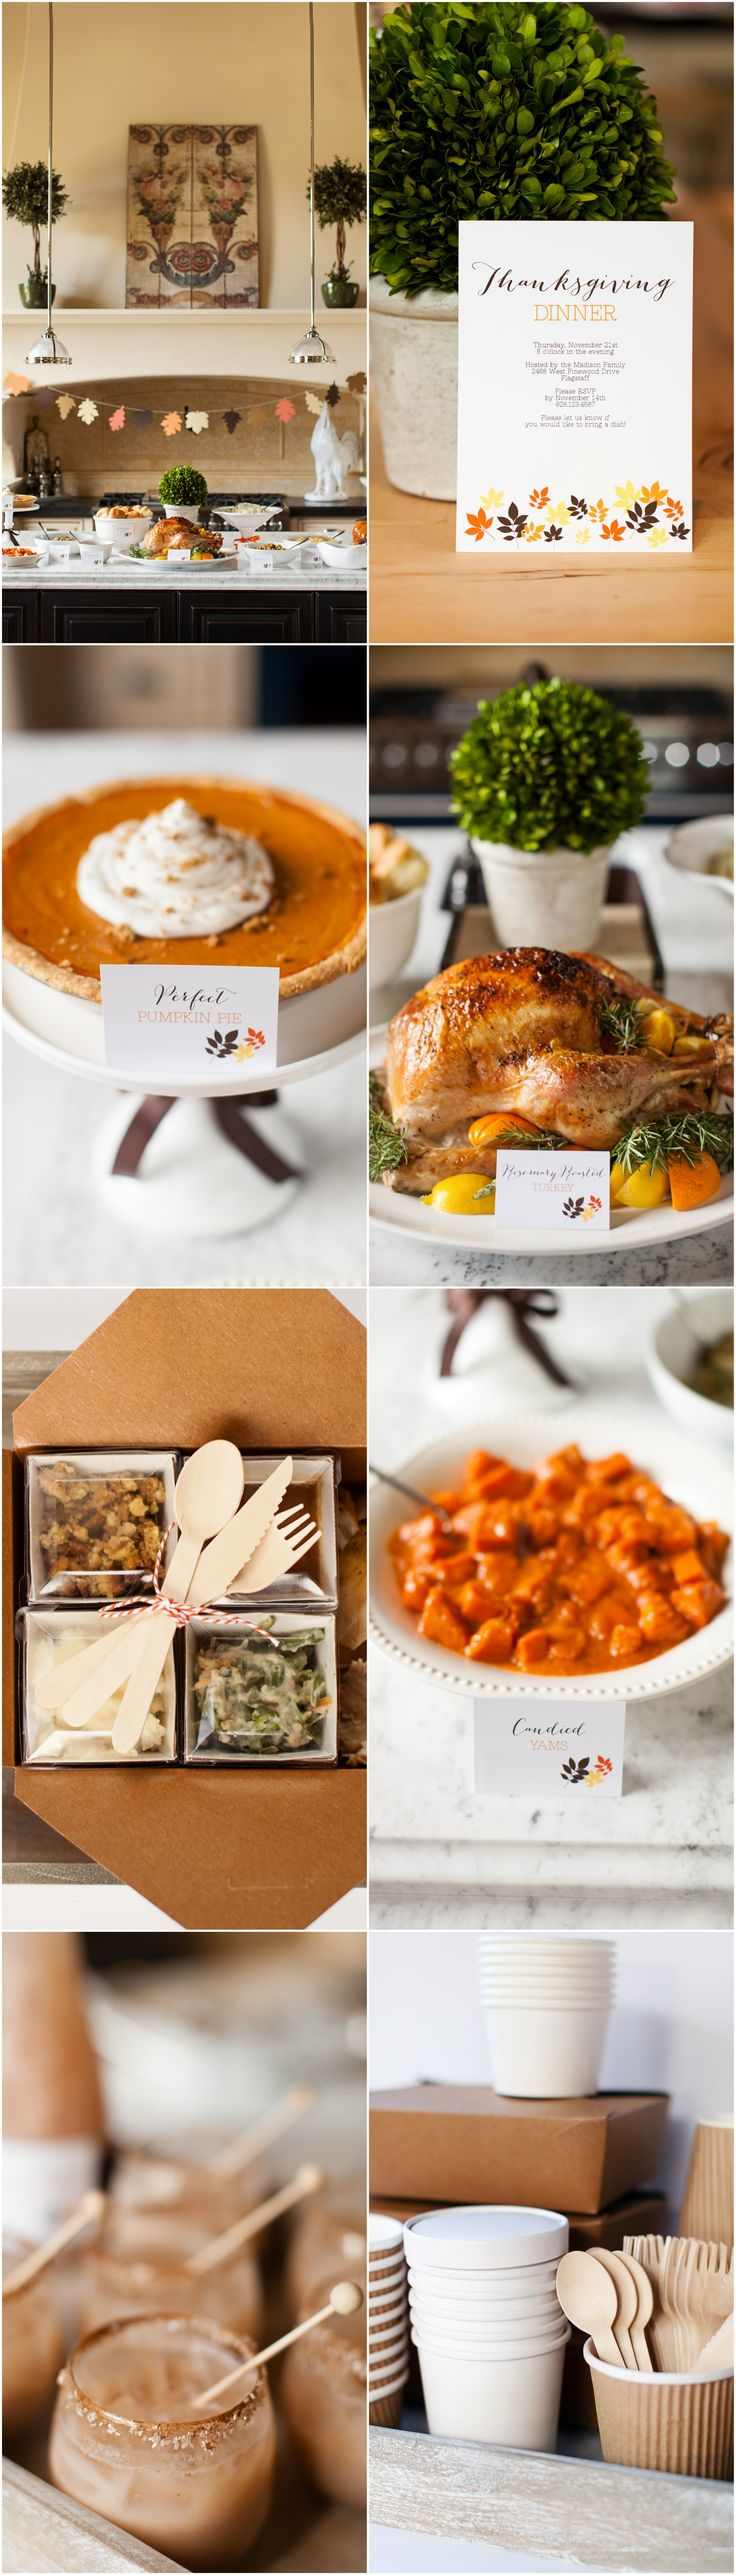 Thanksgiving Dinner Ideas, Recipes + Free Printables :: The TomKat Studio for @HGTV http://www.thetomkatstudio.com/hgtvythanksgiving/